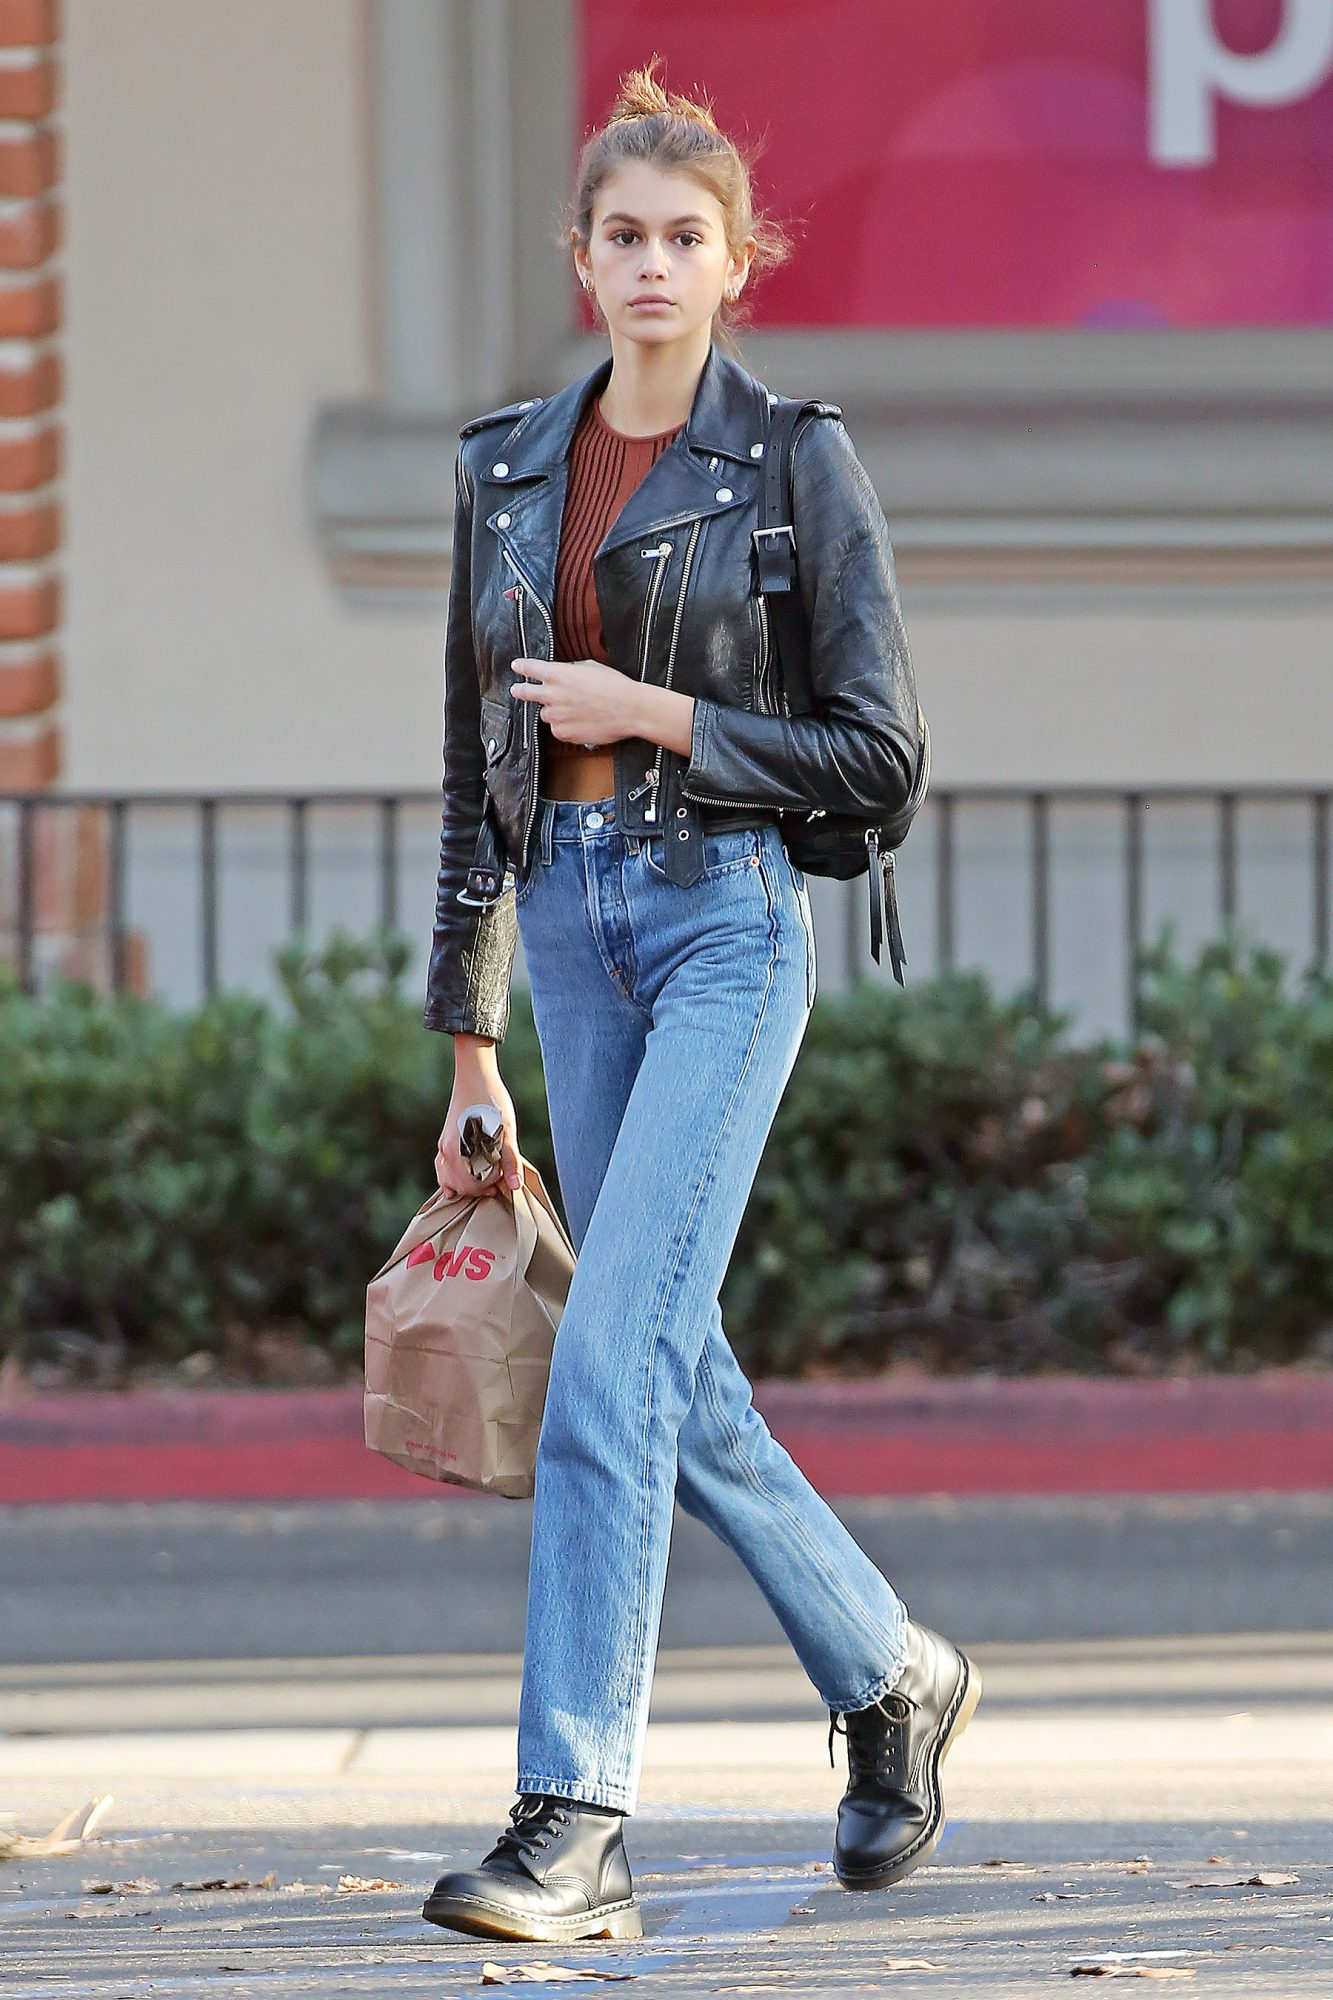 EXCLUSIVE: Kaia Gerber Displays Her Rebel Side In Leather Jacket And Jeans While Stopping At CVS And Cafe Habana In Malibu